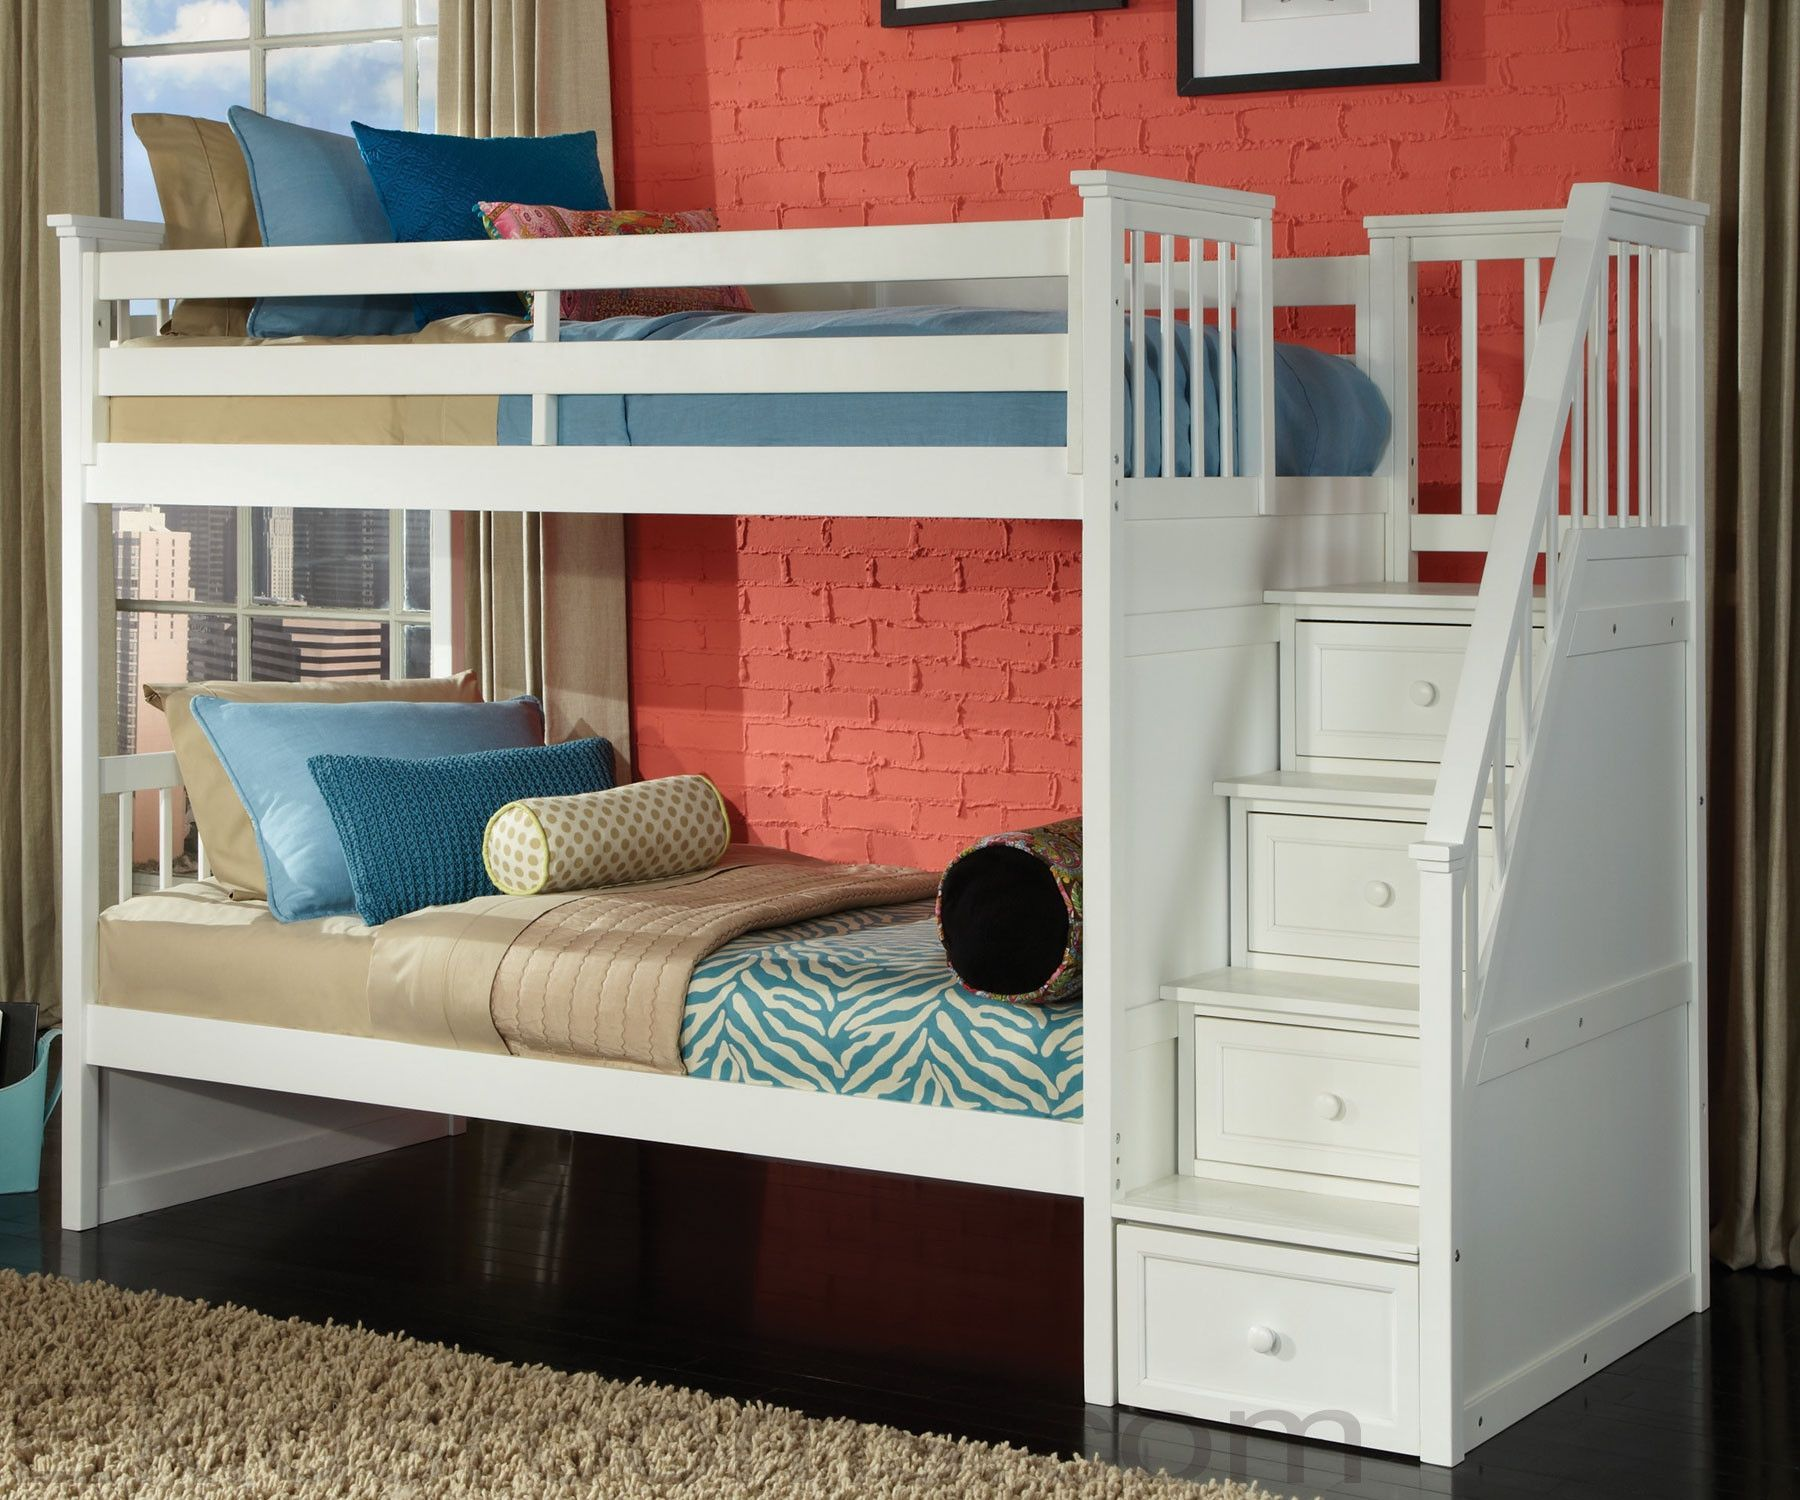 Bunk bed with stairs and storage - Make Stairs Open Under And 20 Wide To Put Storage Cubes Under Storage Cubesstorage Drawersbunk Beds